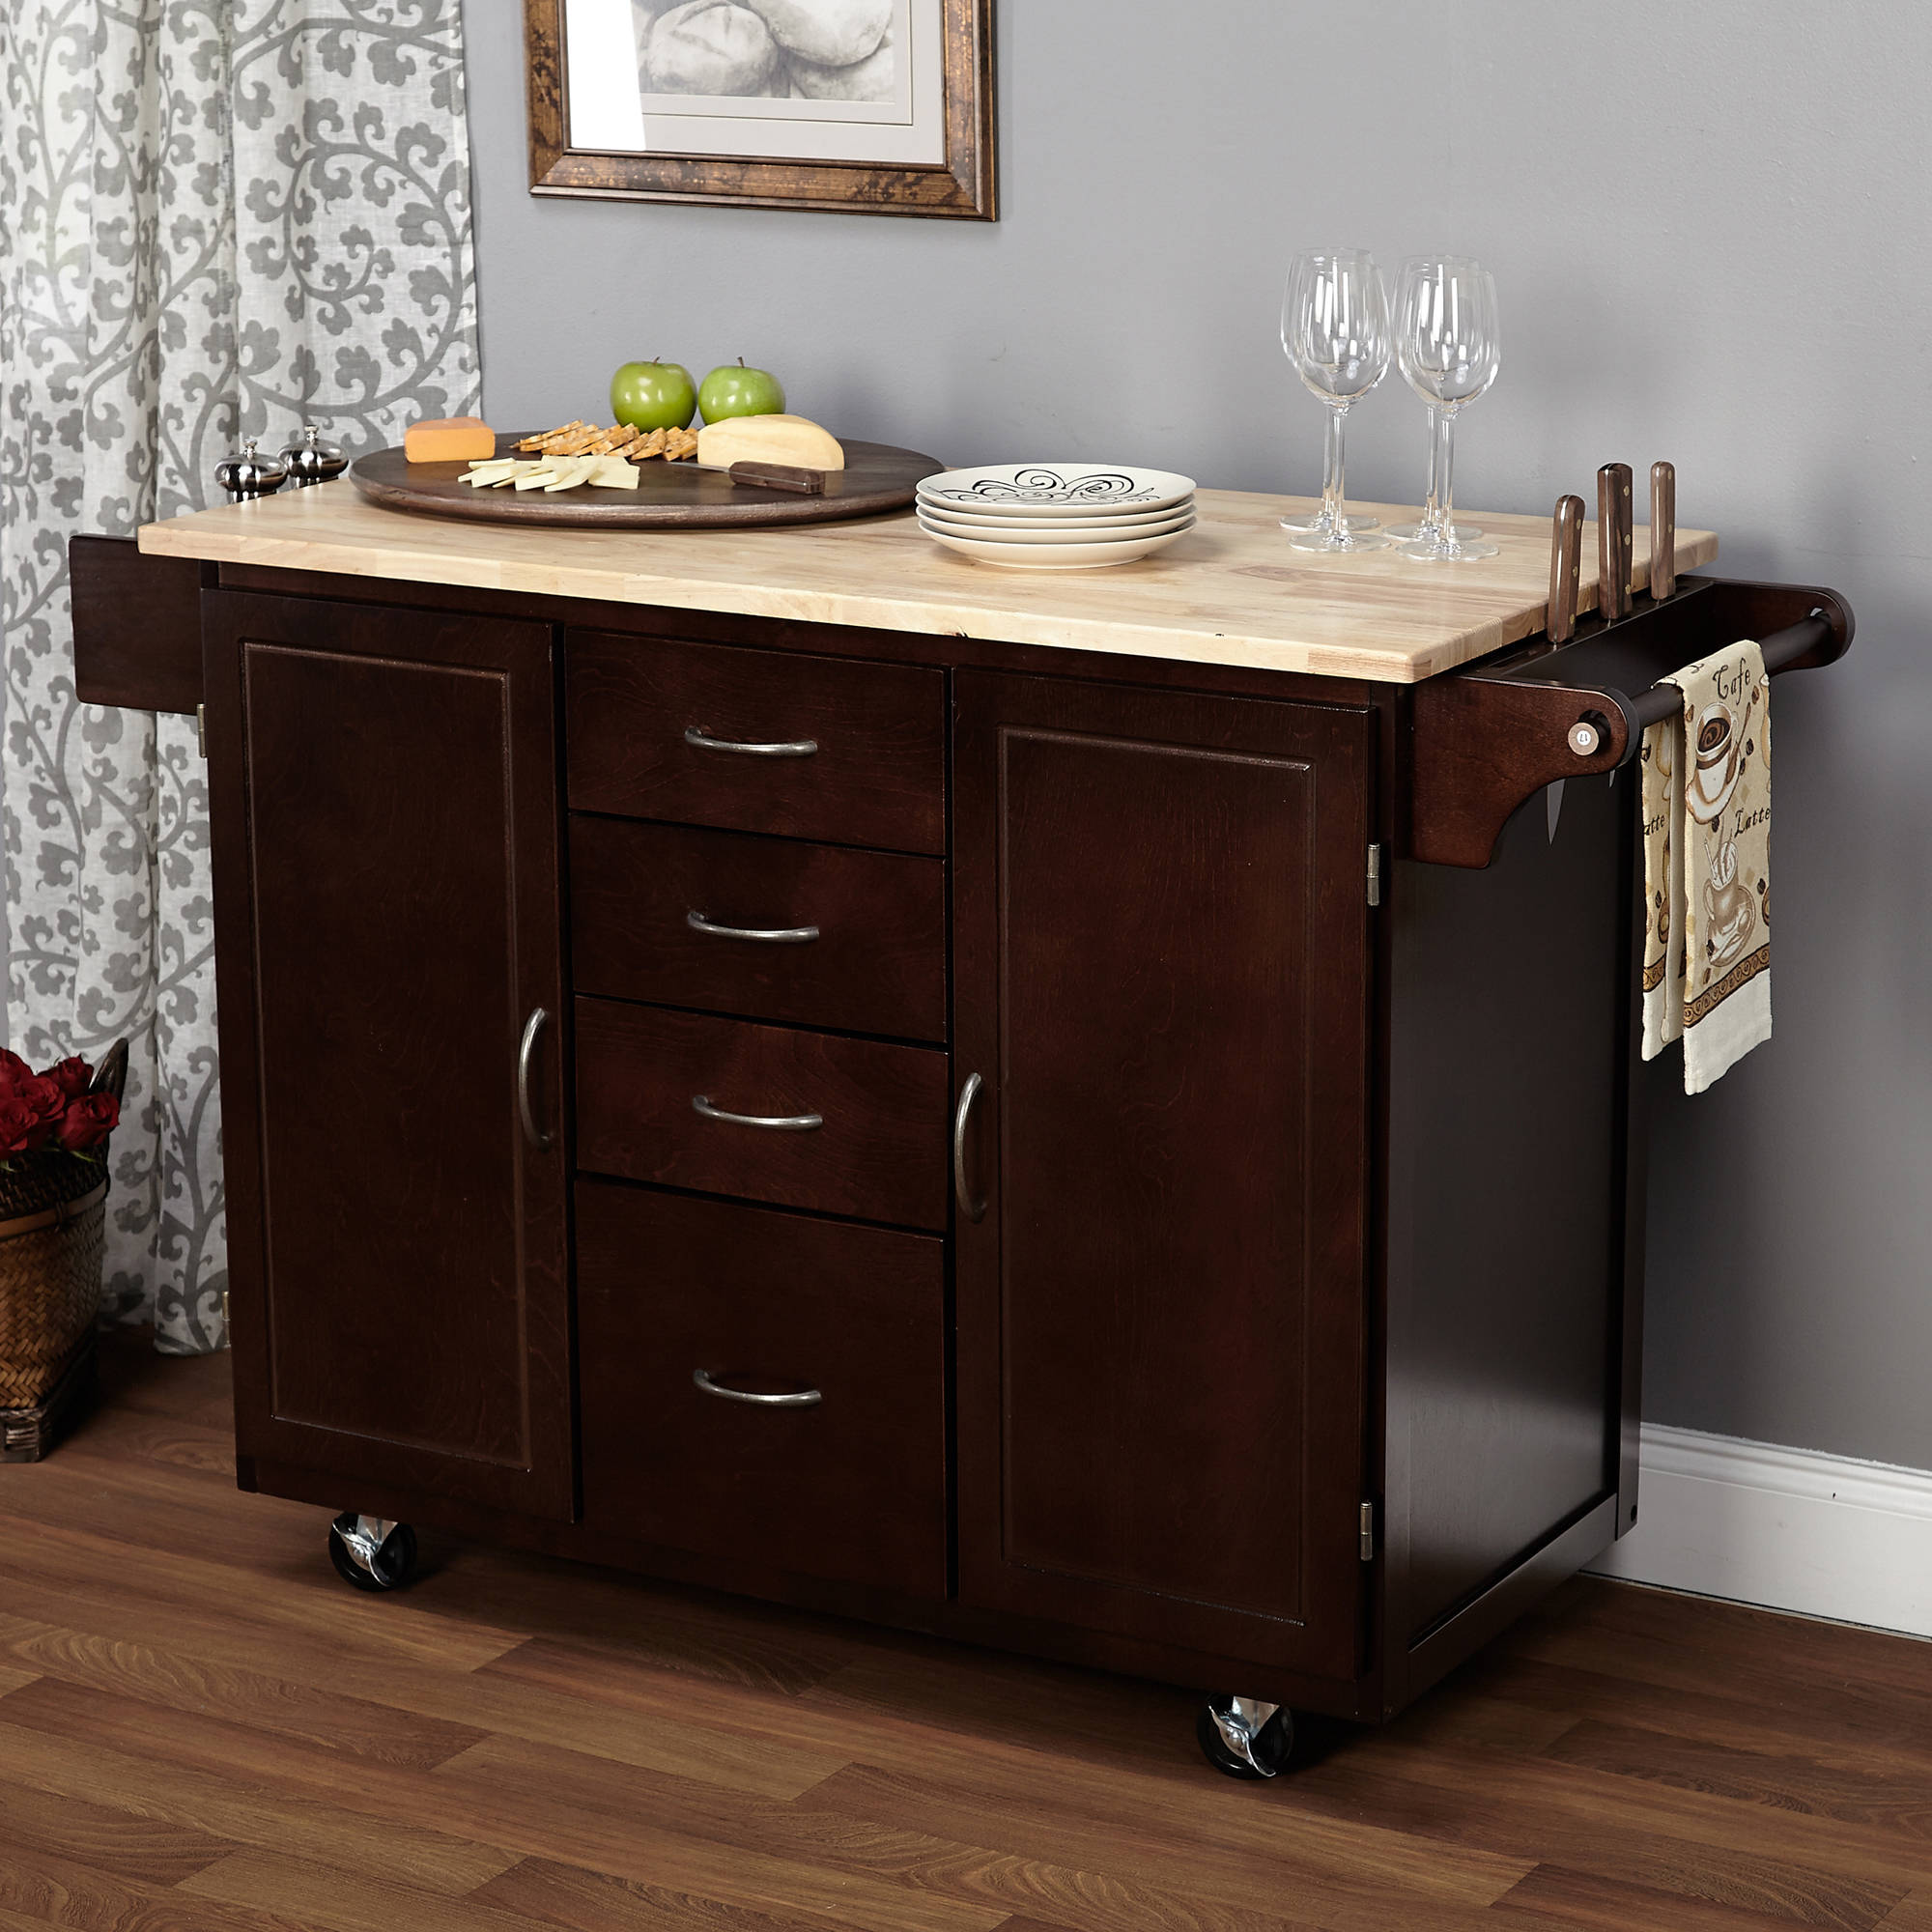 eHemco Kitchen Island Cart Natural Butcher Block Bamboo Top with White Base  - Traveller Location